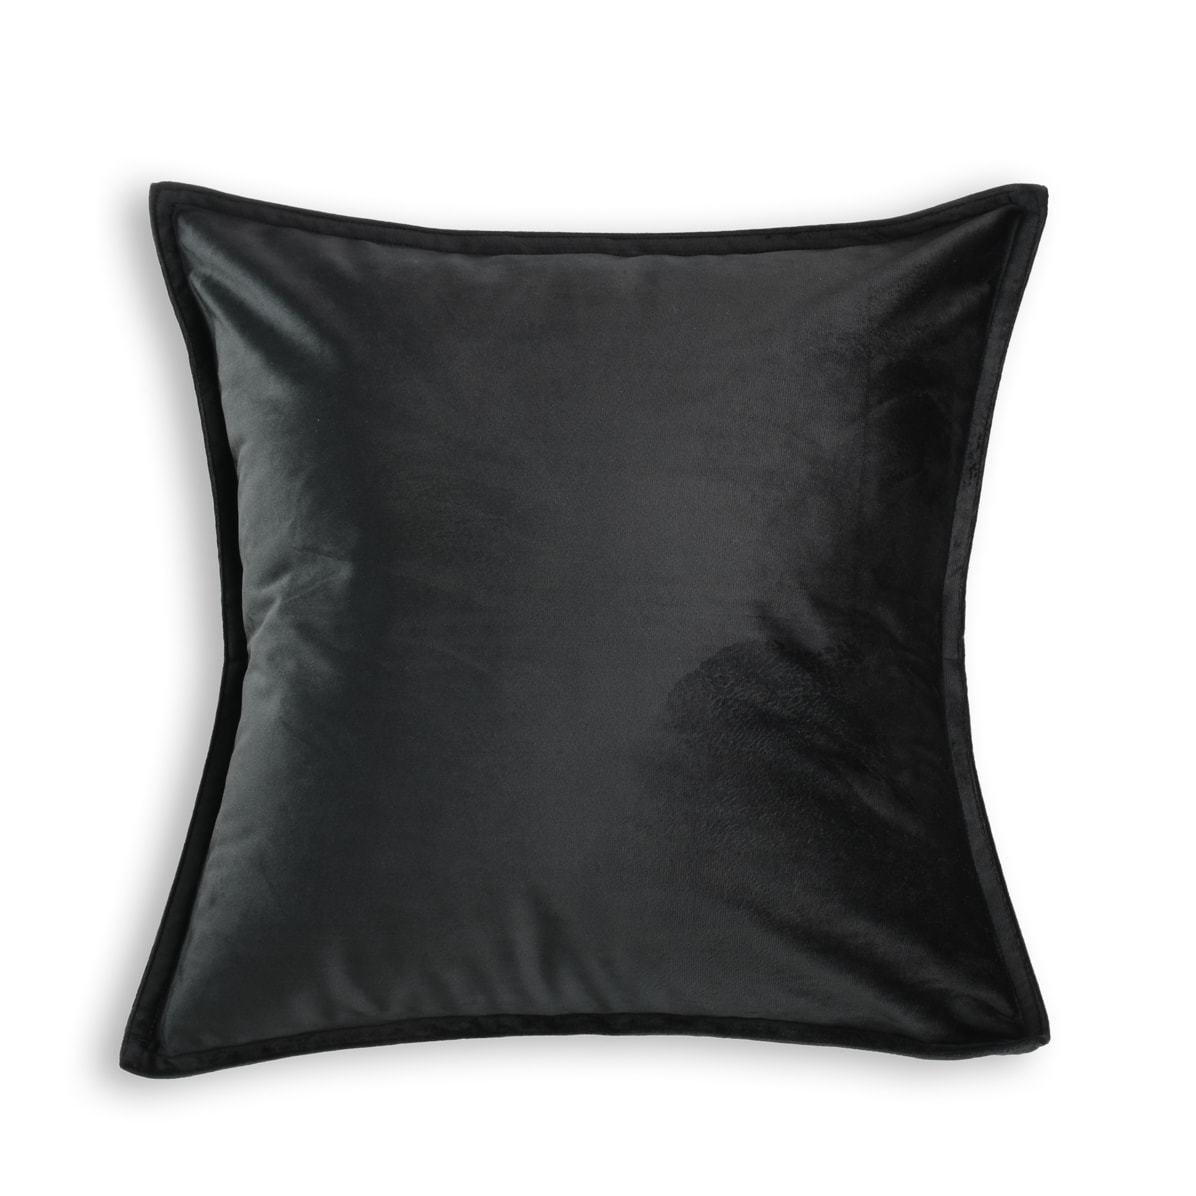 Velvet Black European Pillowcase